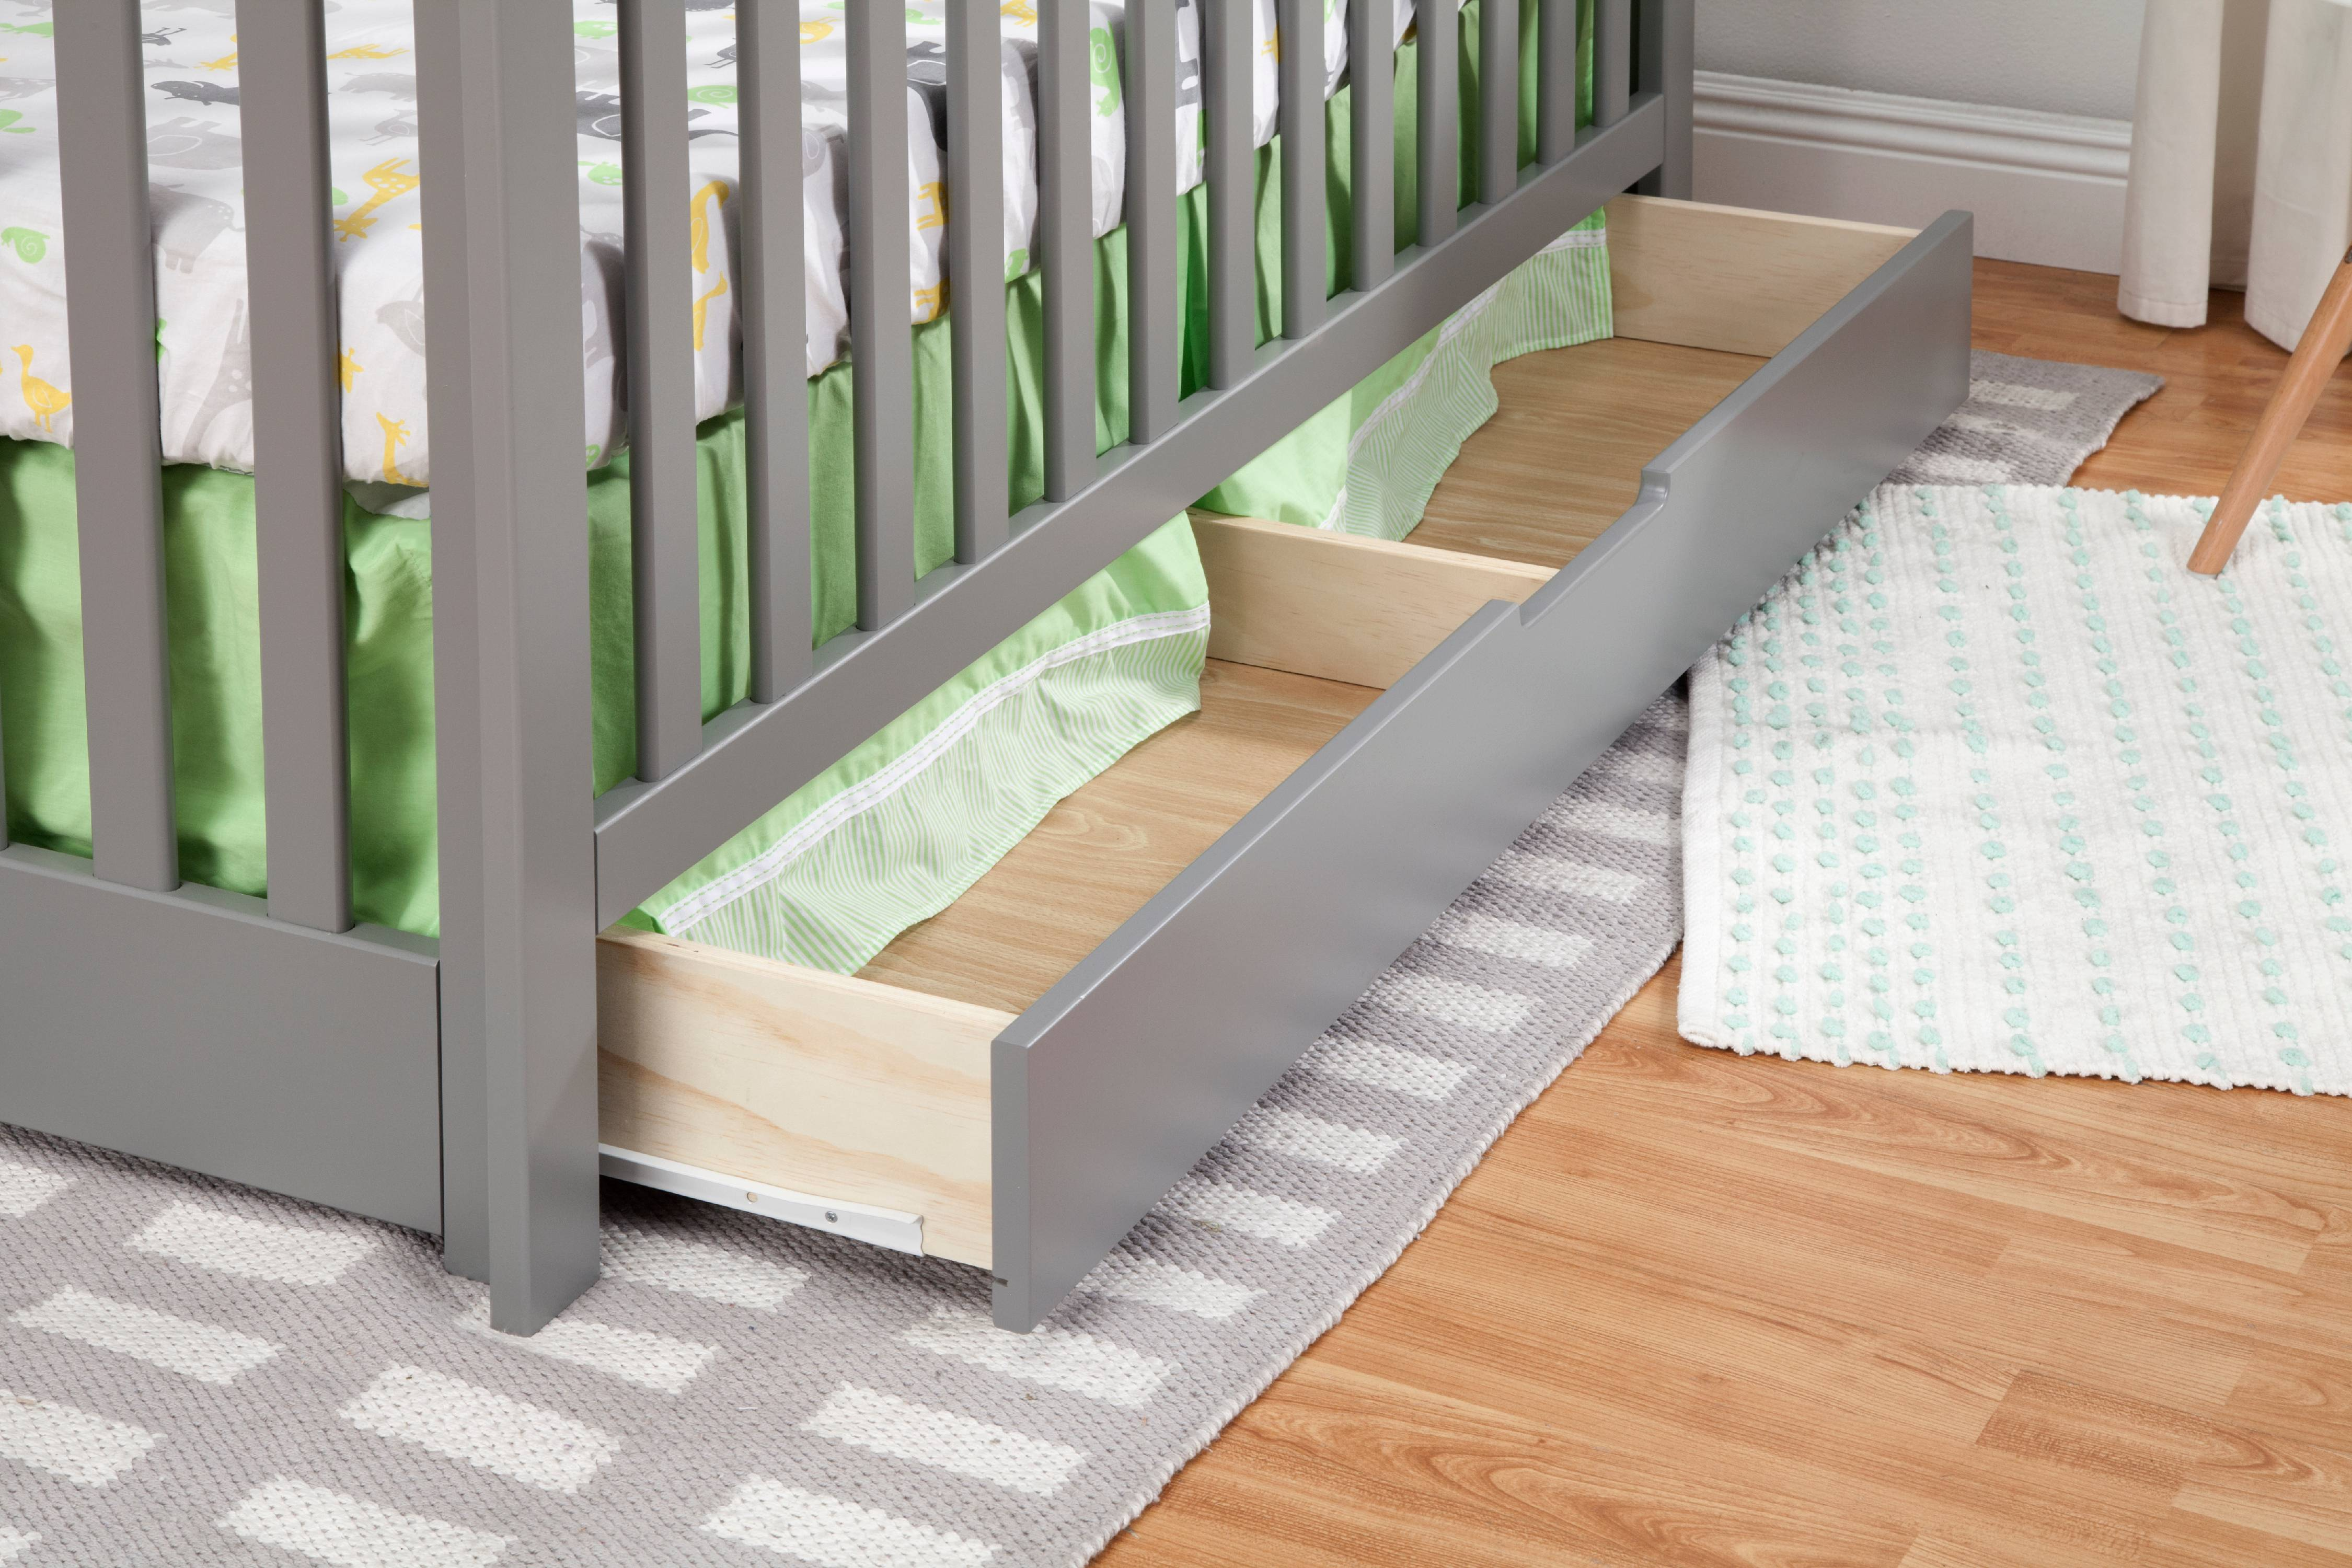 Carter S By Davinci Colby 4 In 1 Convertible Crib With Trundle Drawer In White Walmart Com Walmart Com